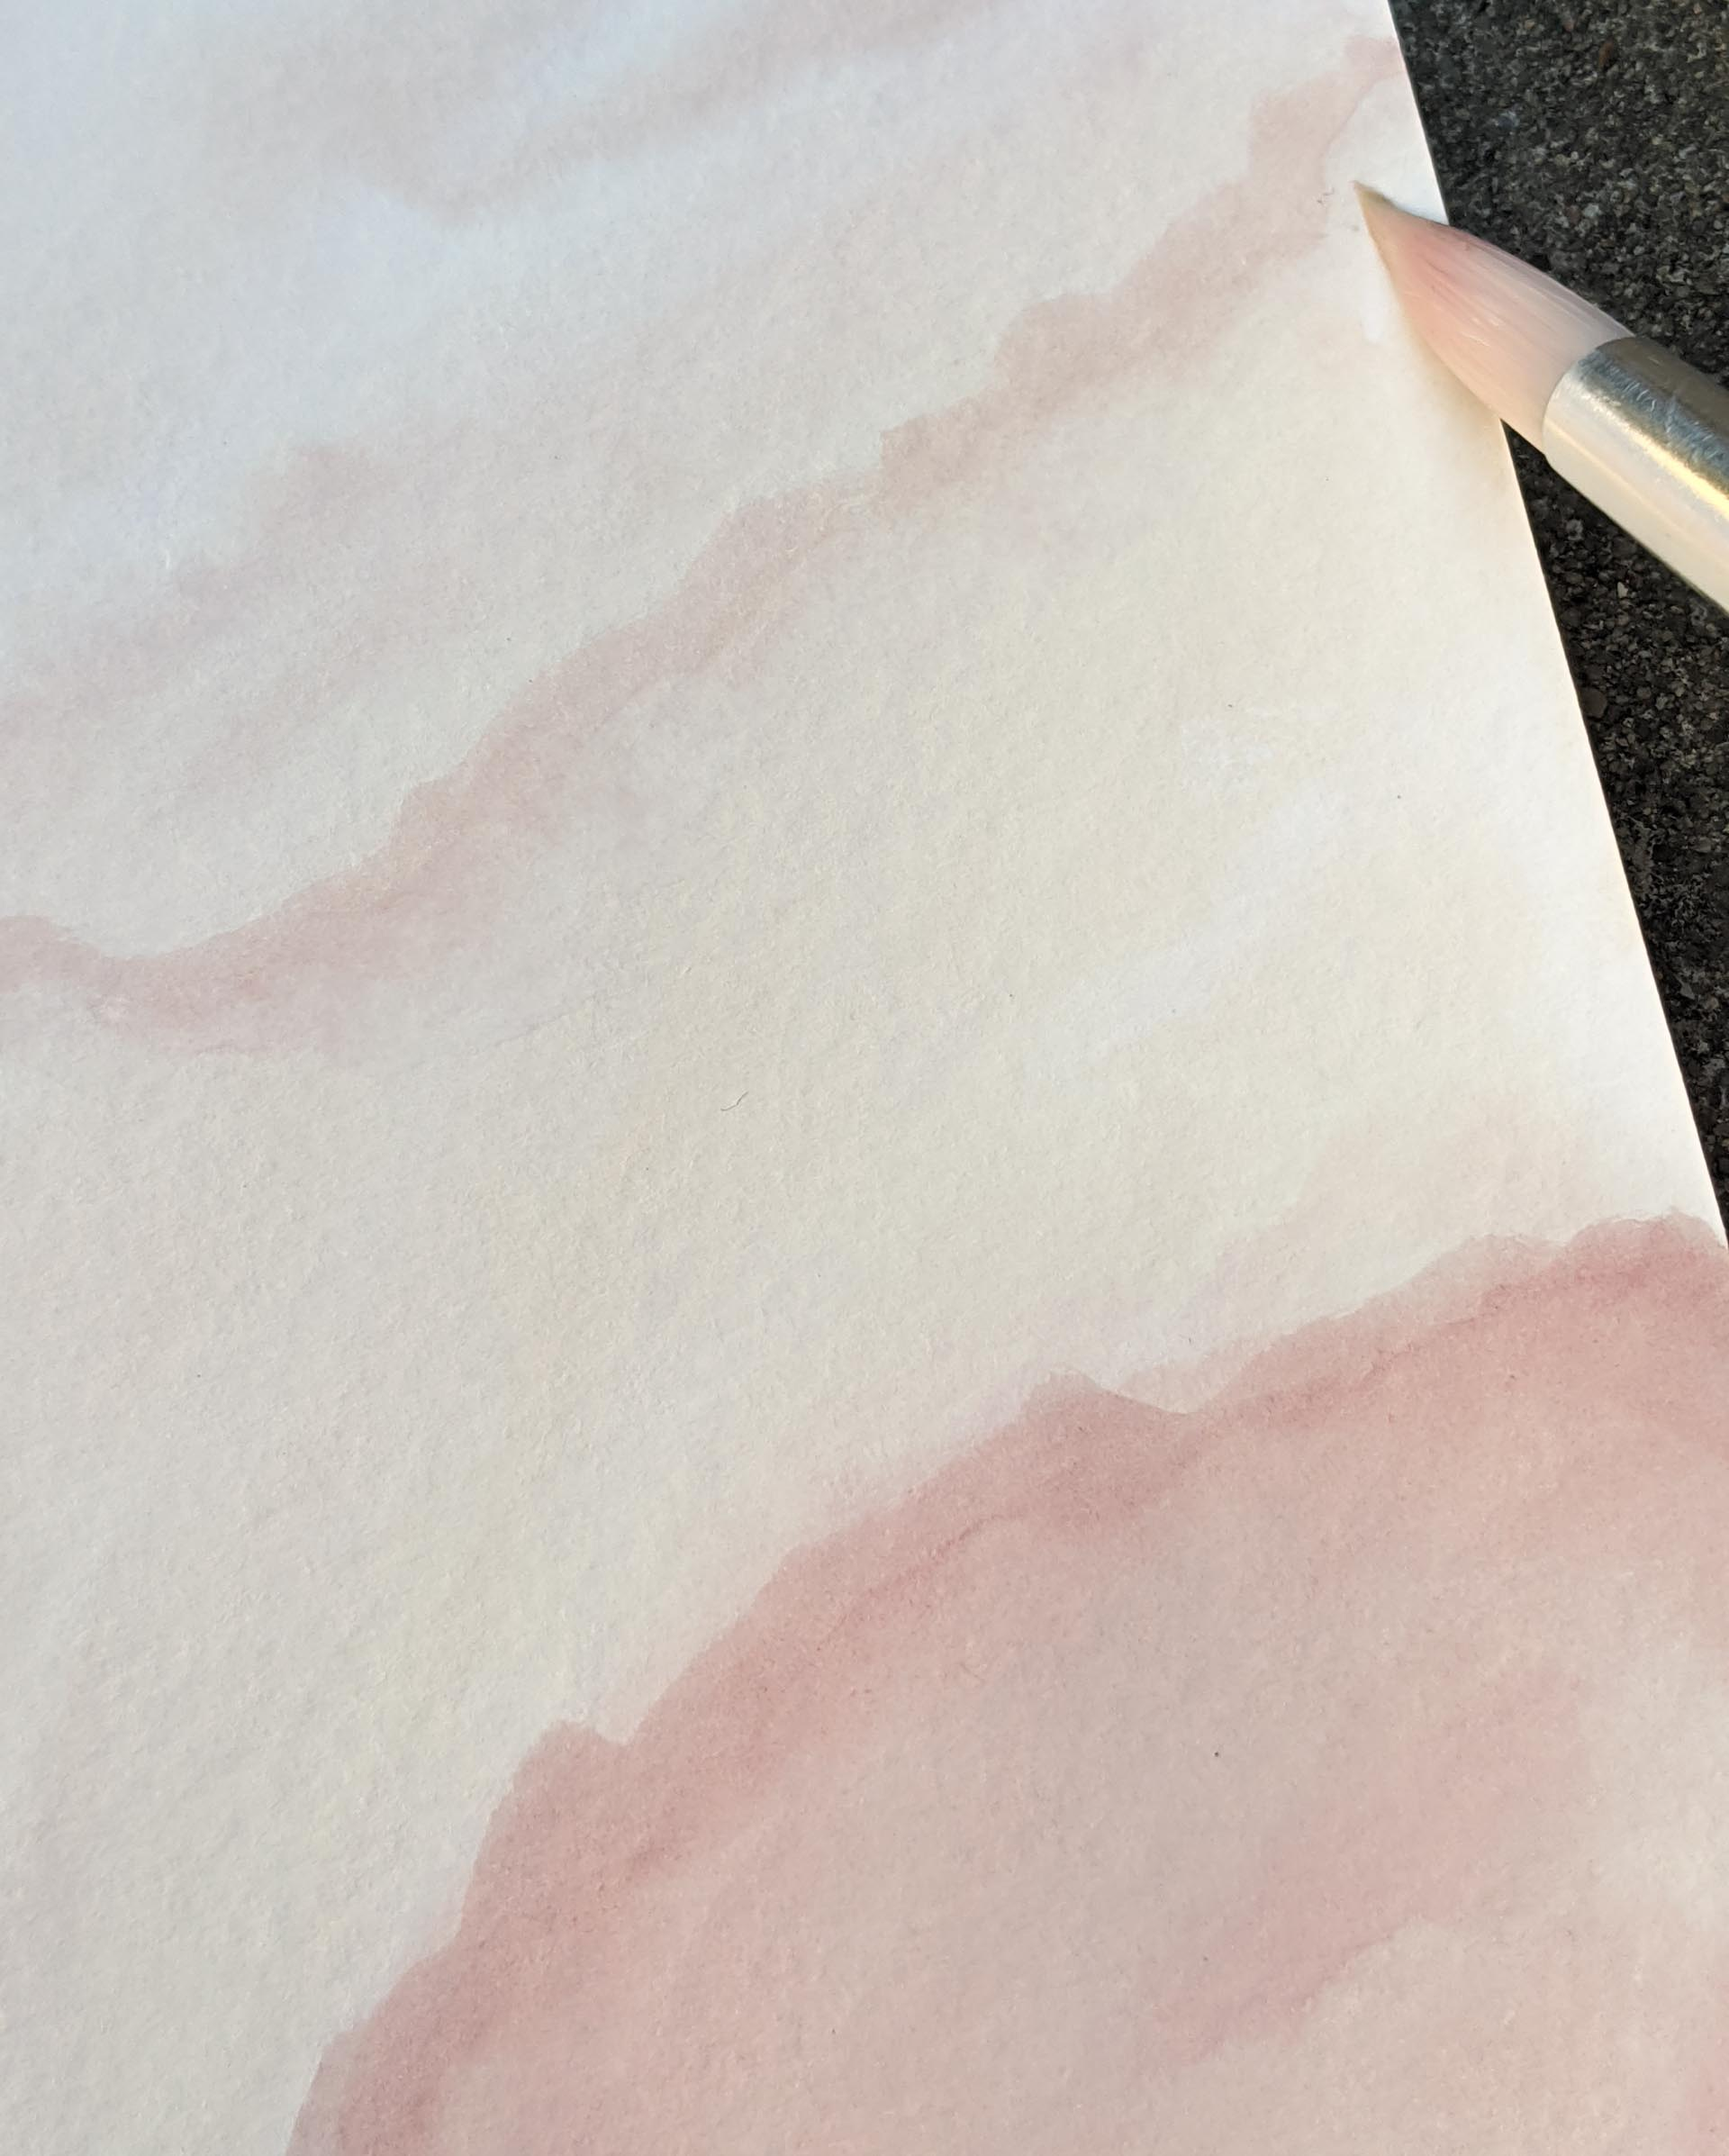 Spreading the paint to the edges of the paper